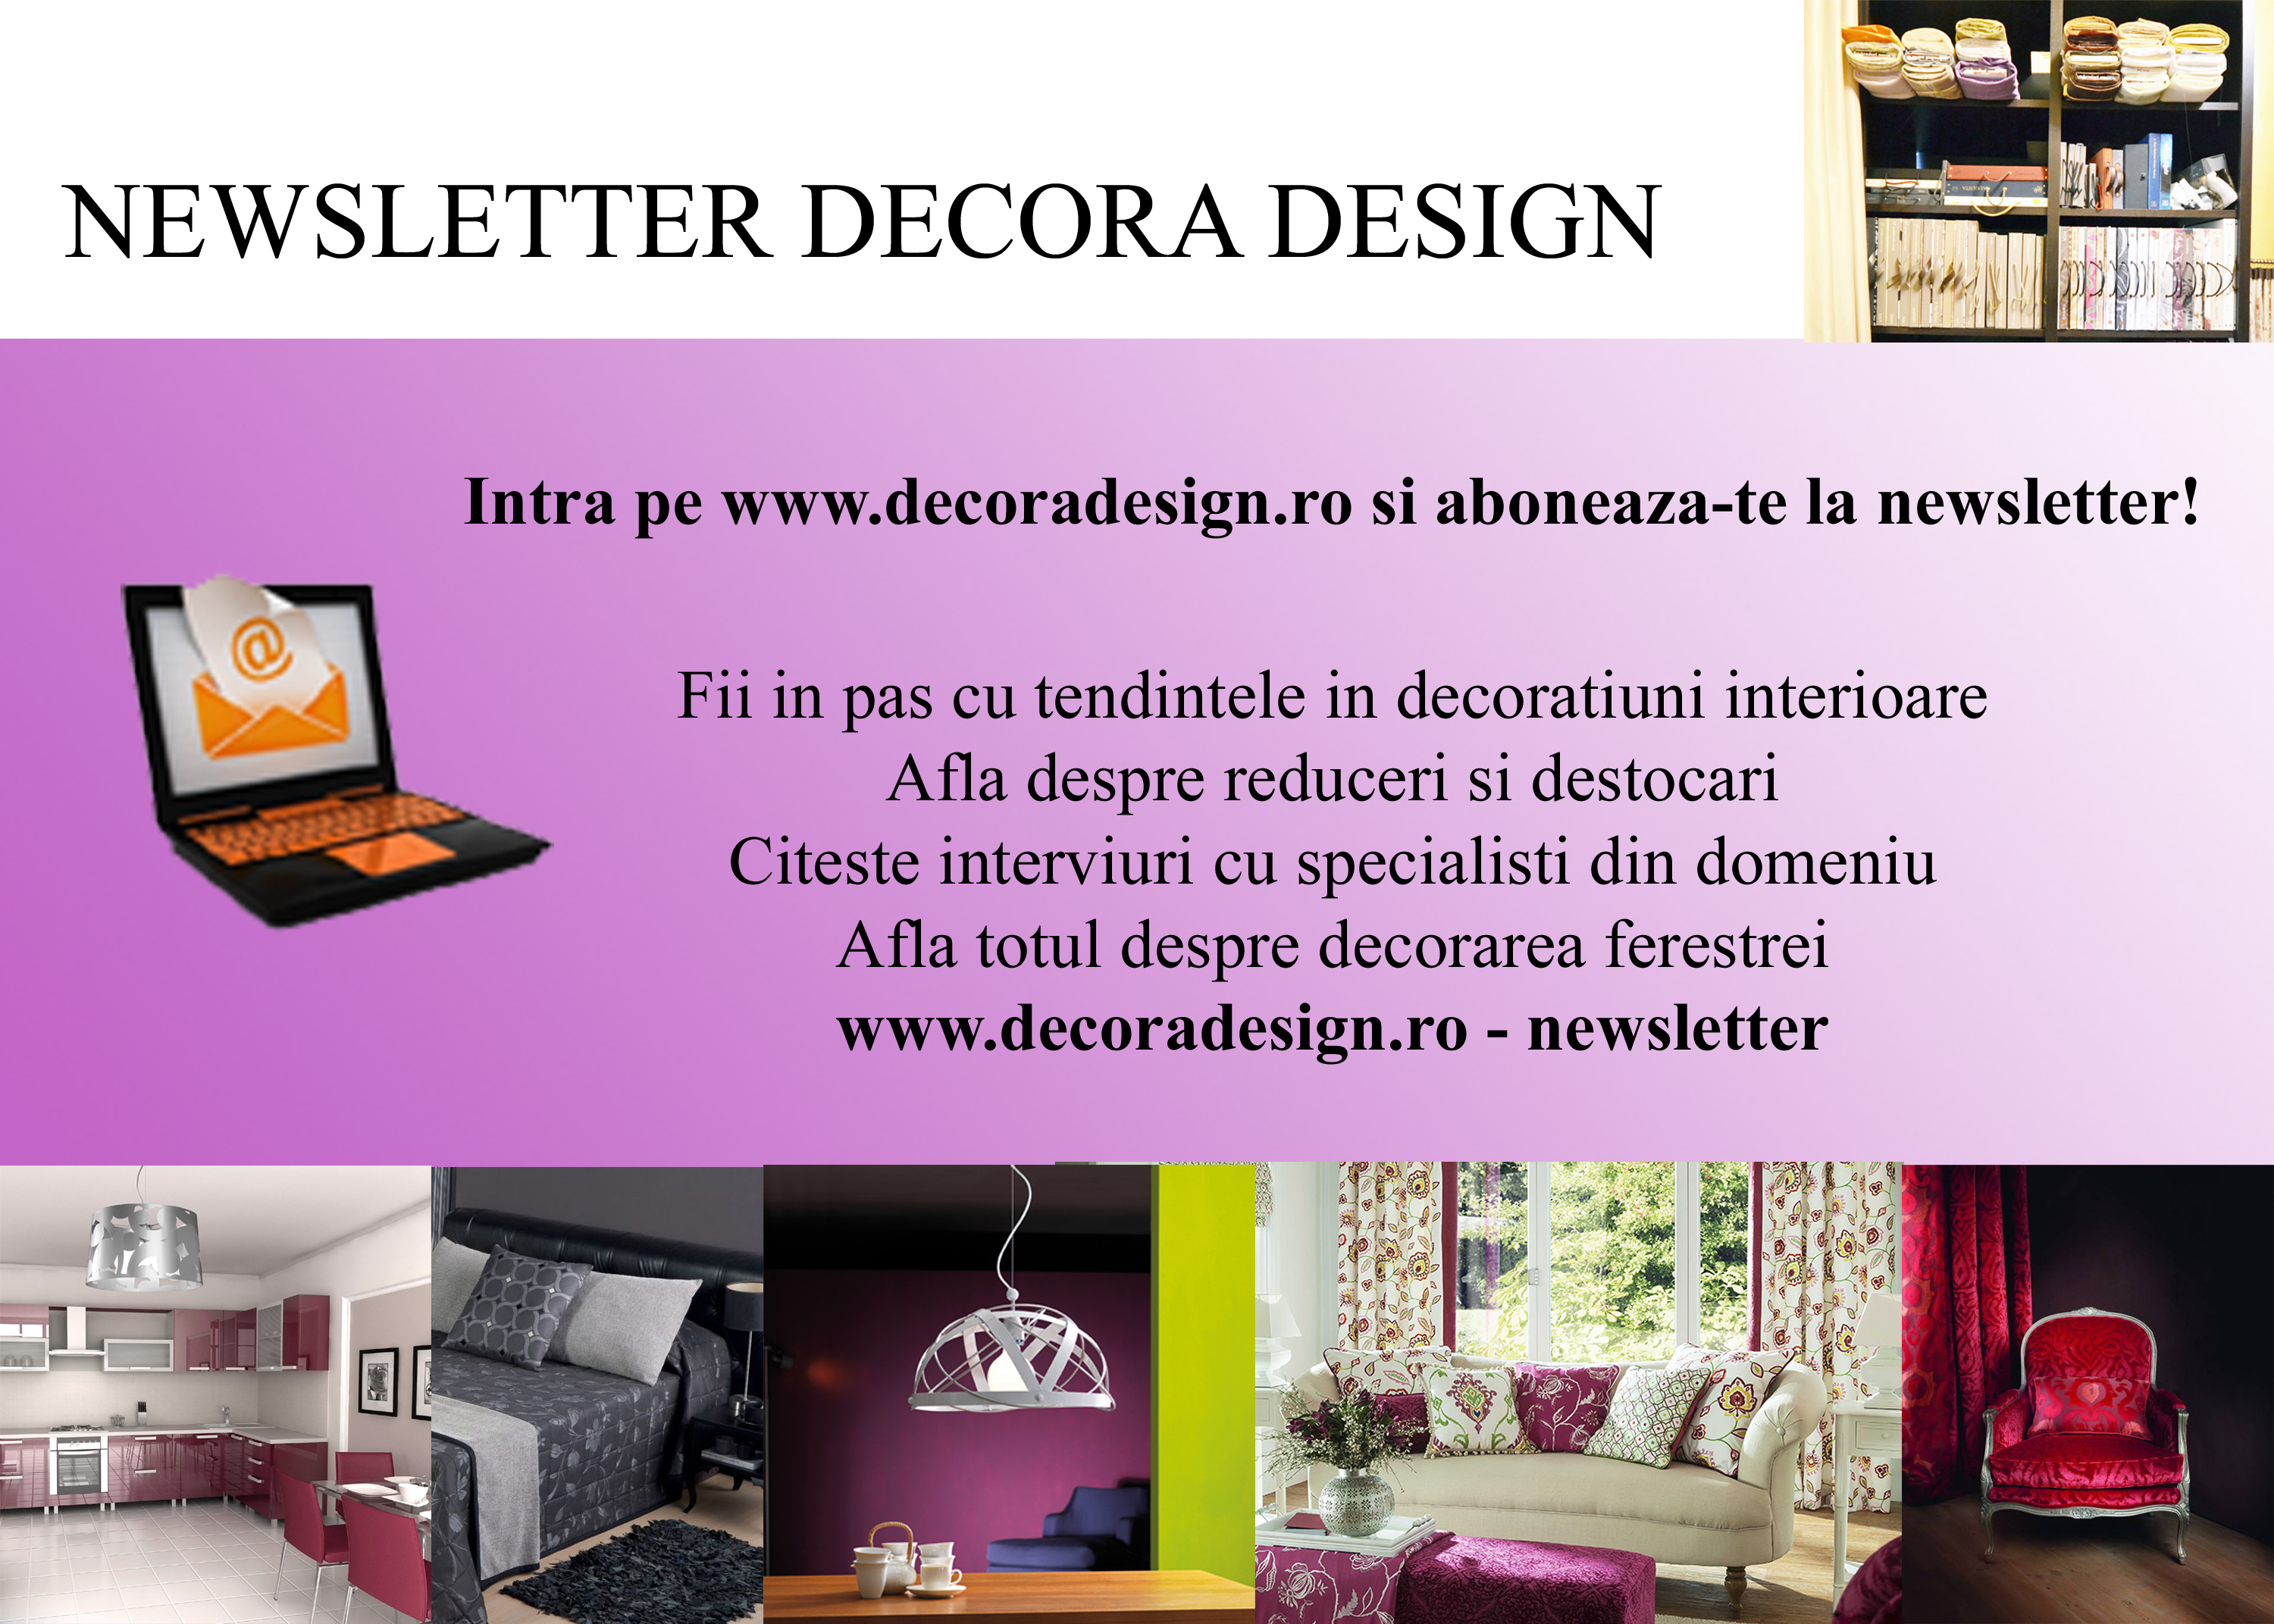 newsletter-decora-design